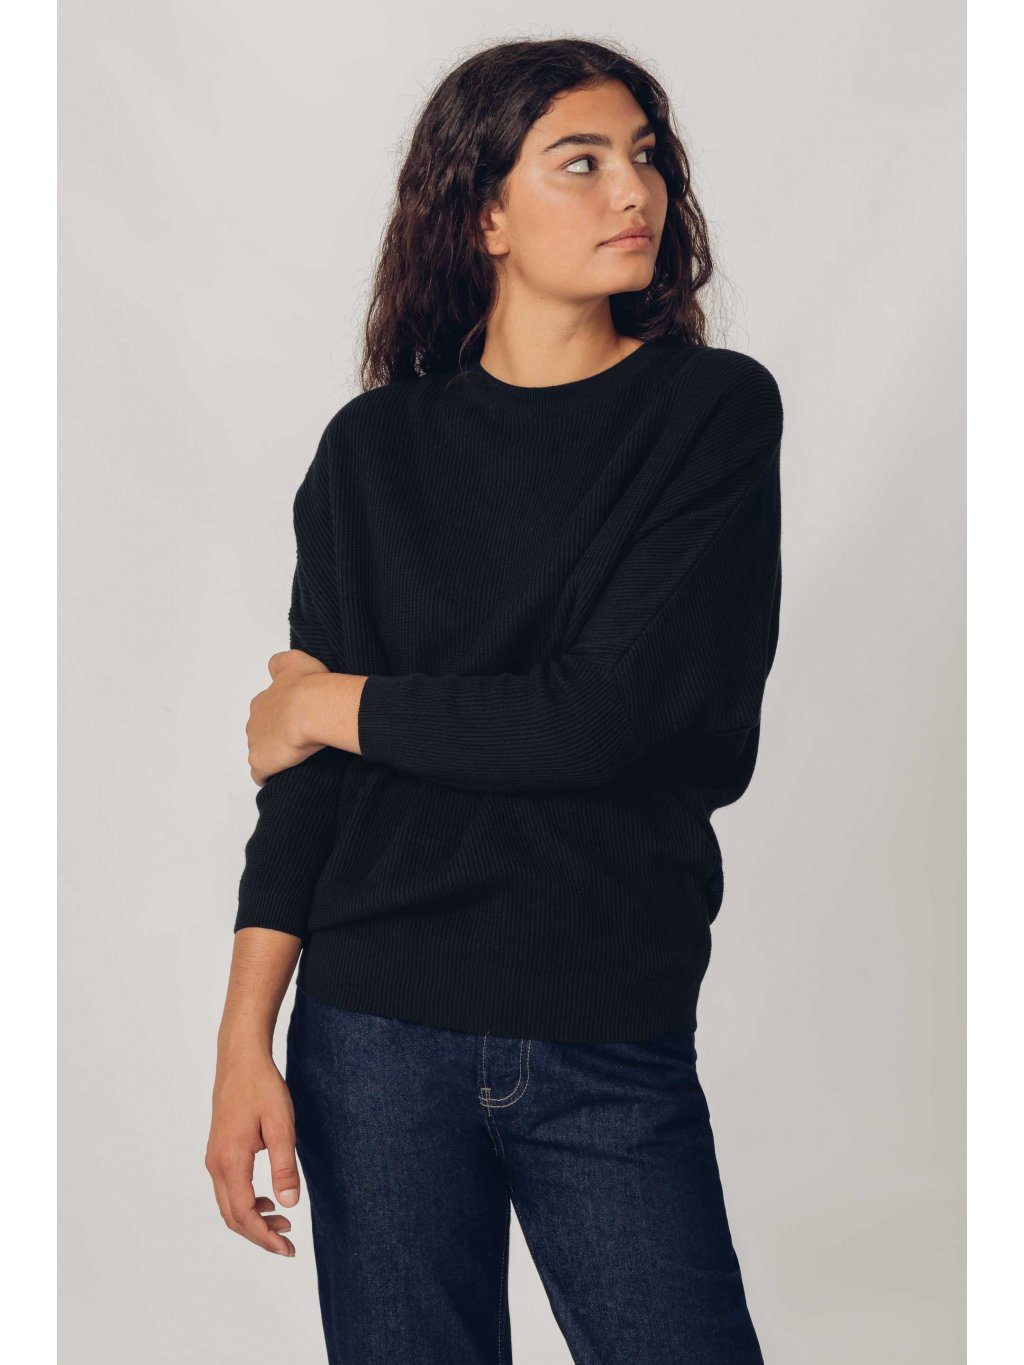 sweater organic cotton xadi skfk wsw00439 2n ofb